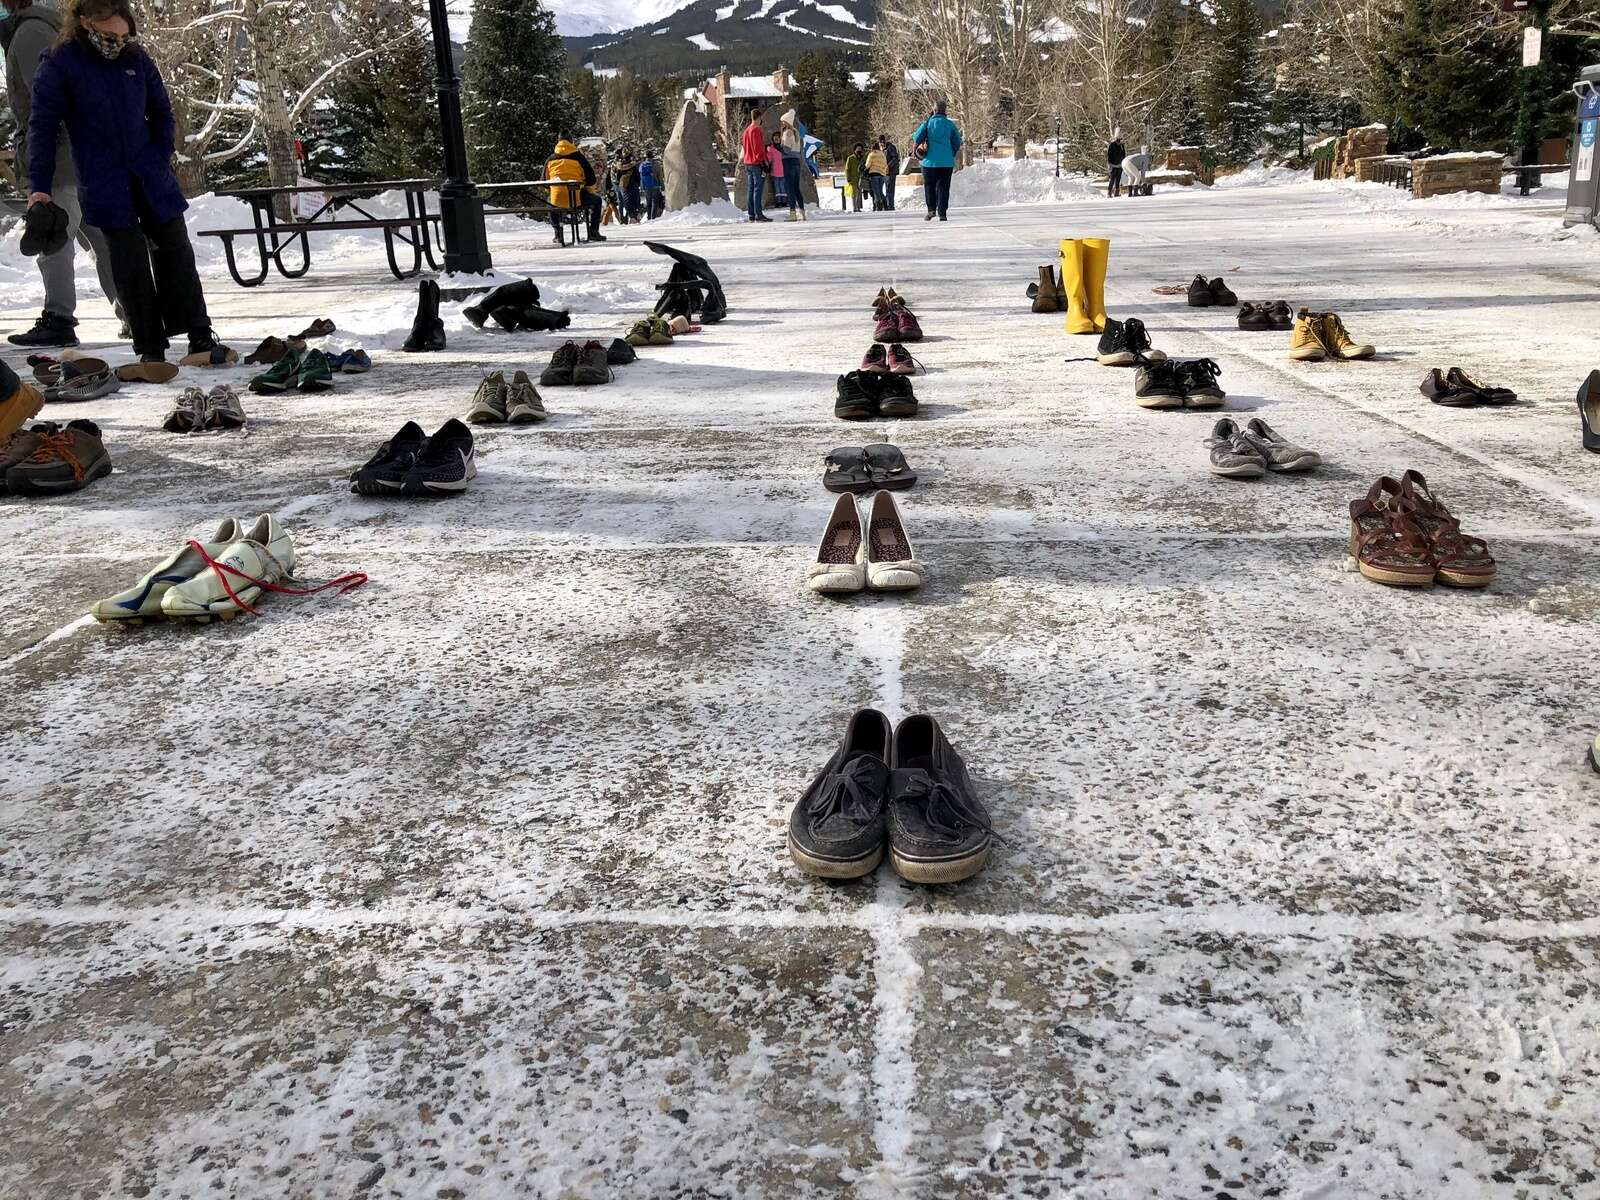 Pairs of shoes represent climate change-related deaths in Colorado during a demonstration Monday, Dec. 14. | Photo by Taylor Sienkiewicz / tsienkiewicz@summitdaily.com